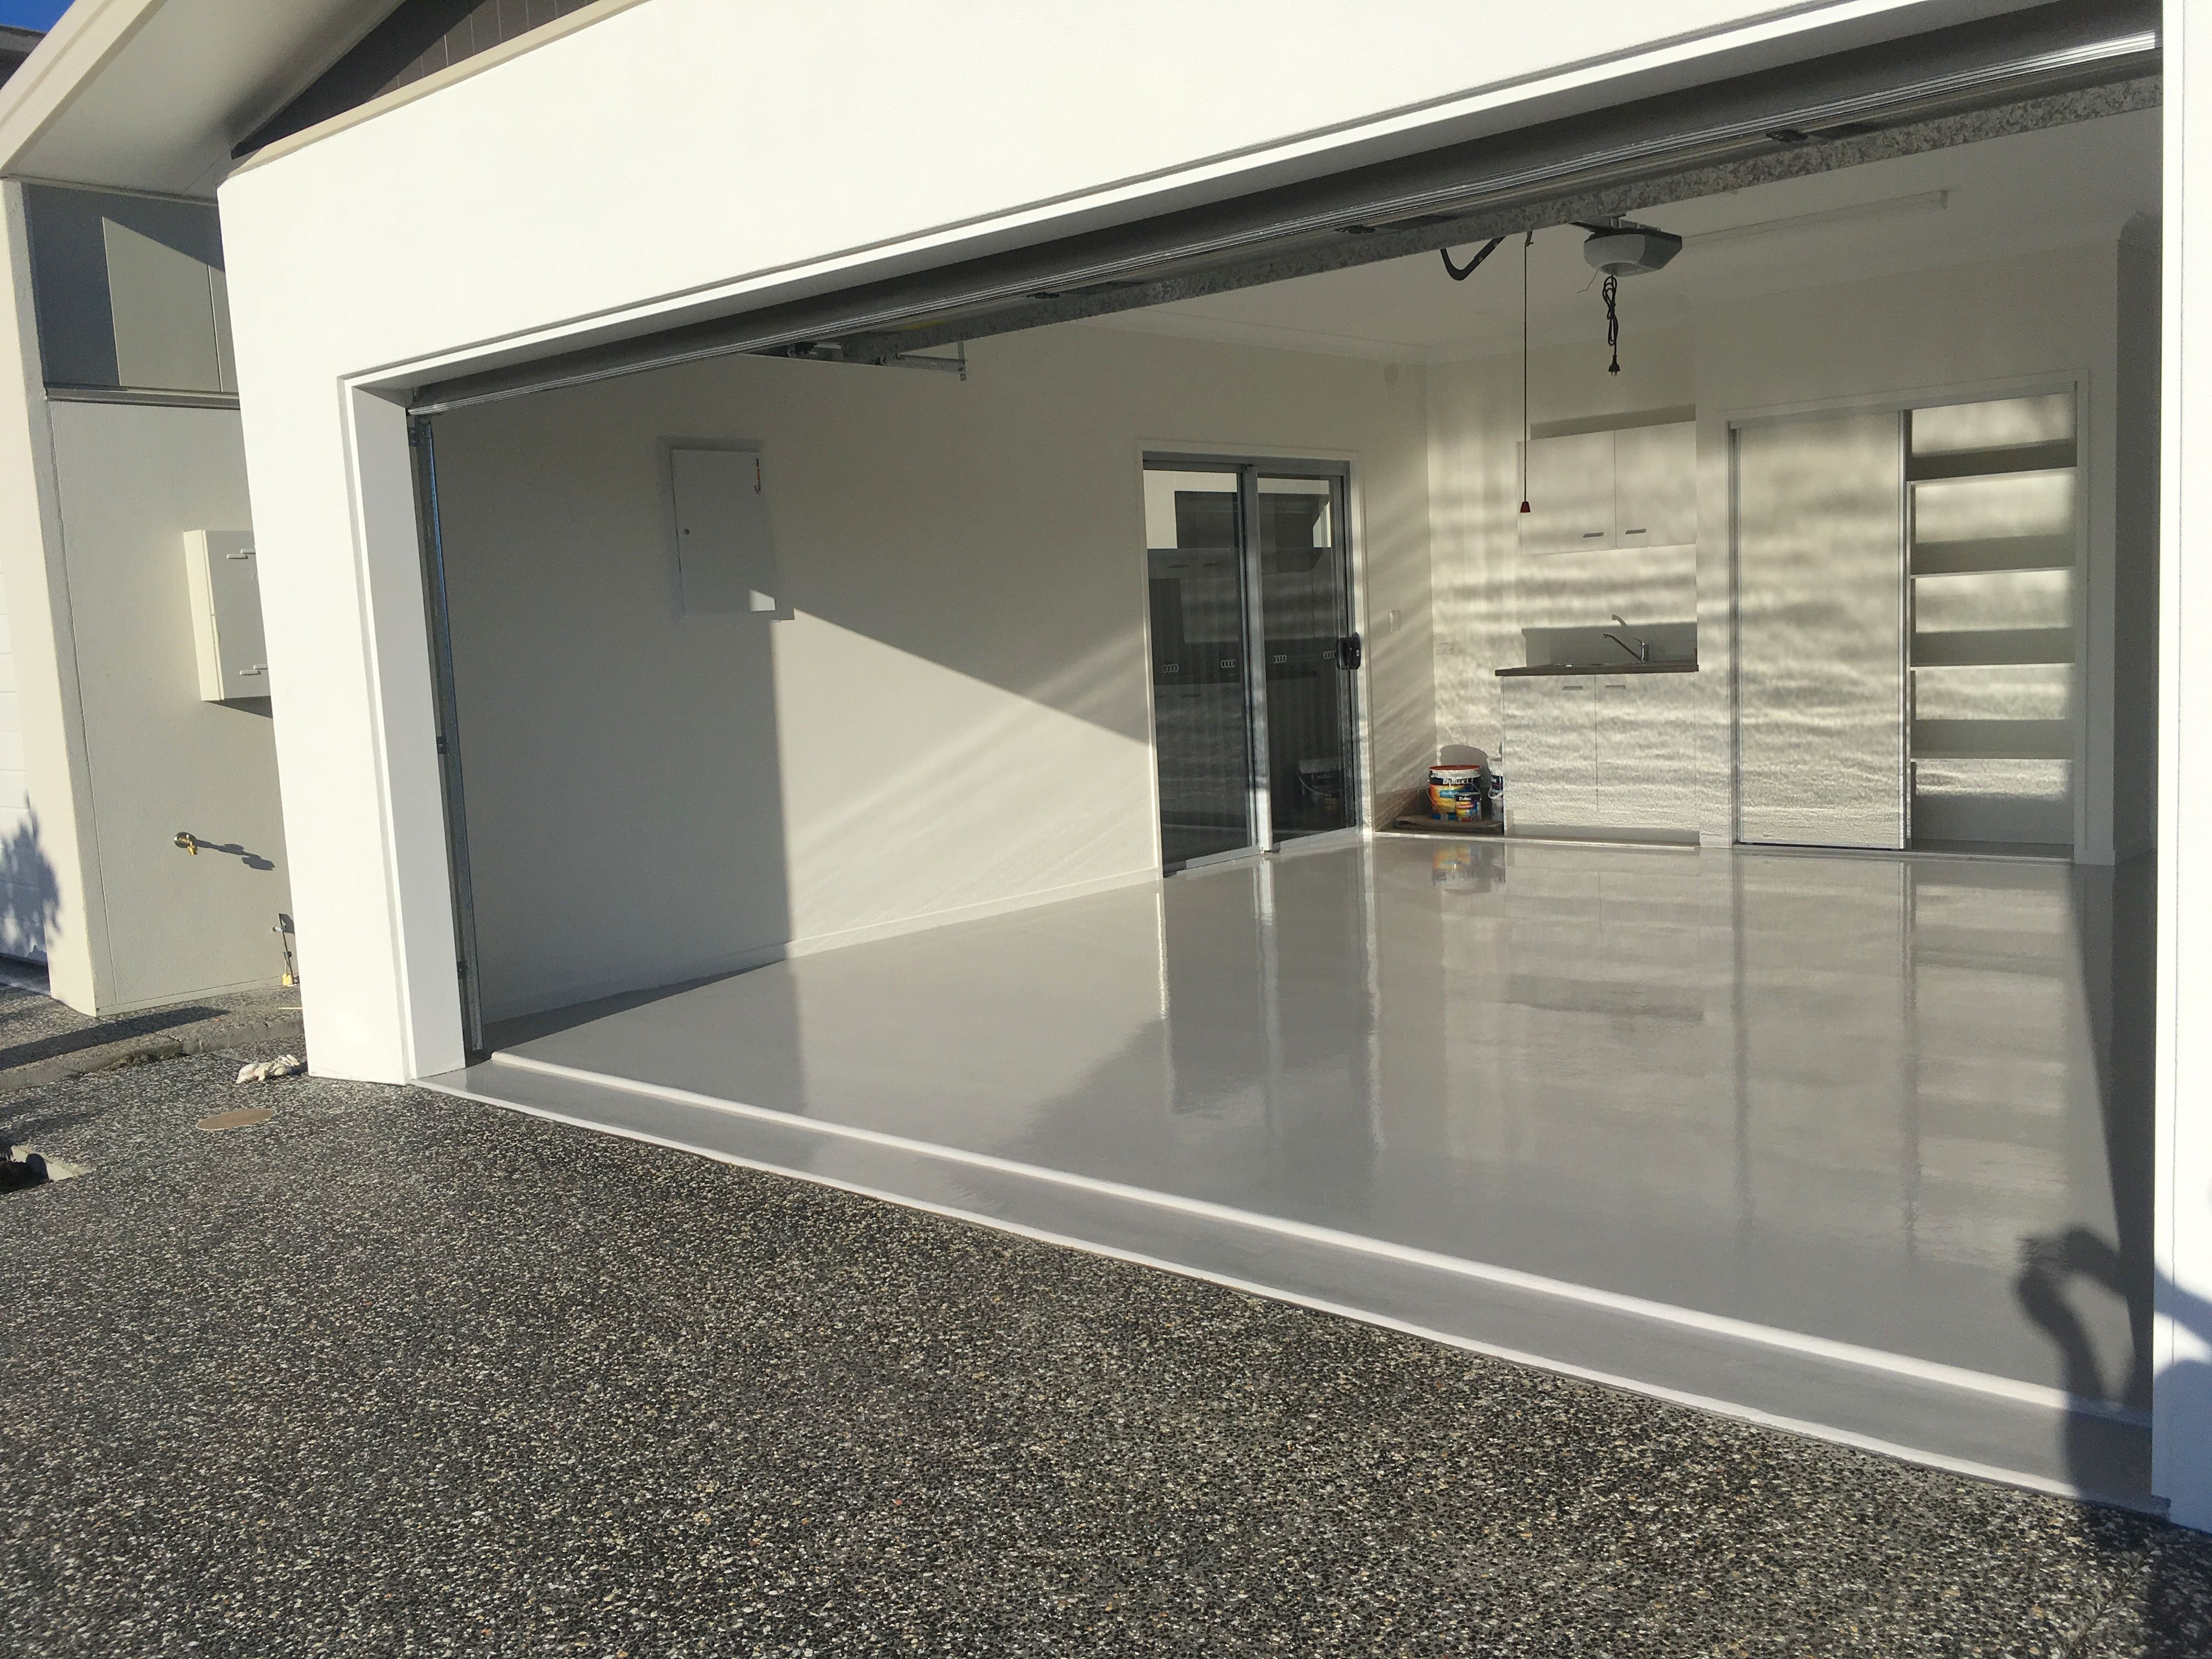 2fe8b94d236 Another display home at Solana Bribie Island Lifestyle Resort completed  with an epoxy floor coating by The Garage Floor Co. Noosa - Maroochydore -  Brisbane.